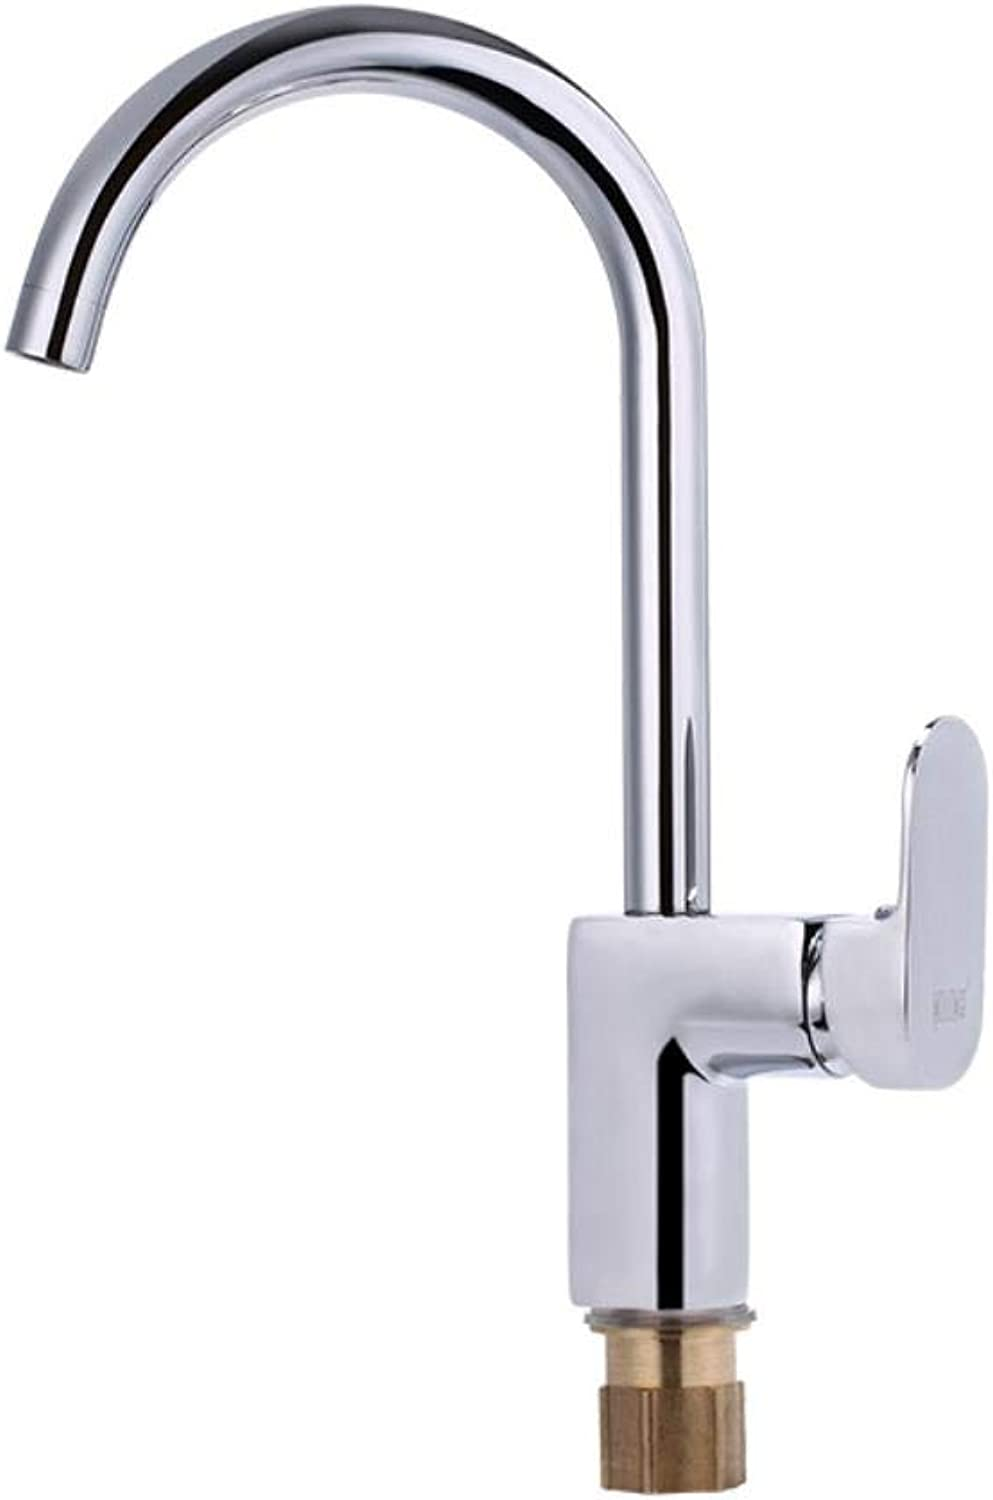 All Copper Hot and Cold 360 Degree redating Washing Dishes Universal Kitchen Faucet Z1028